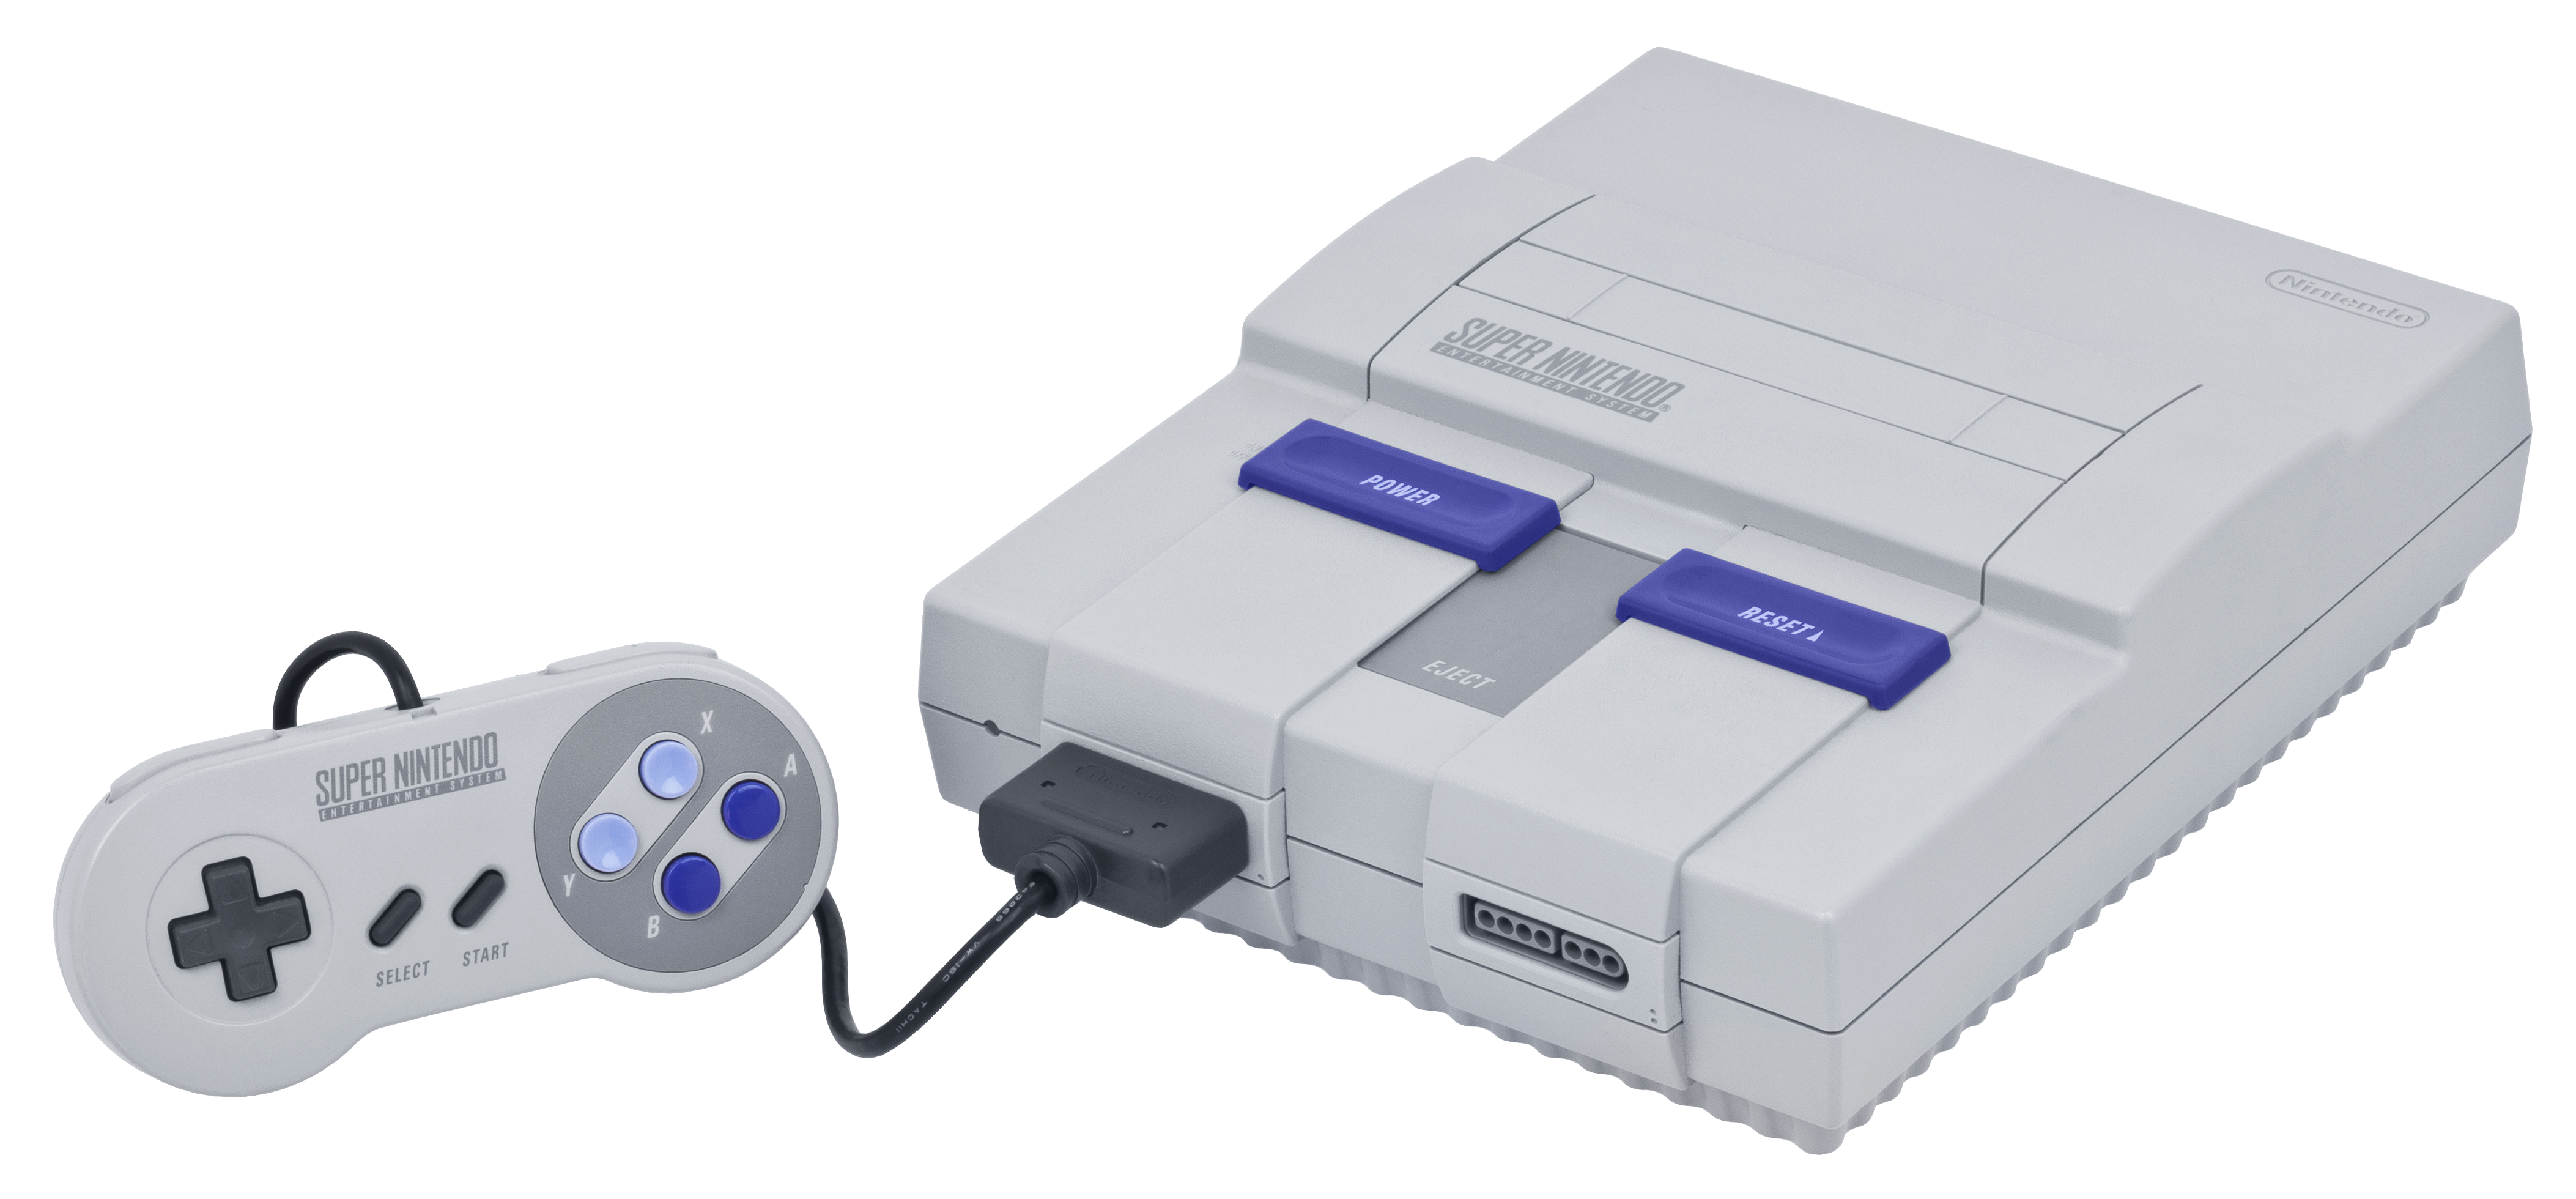 Nintendo Entertainment System From Birth to The Future - Webtady